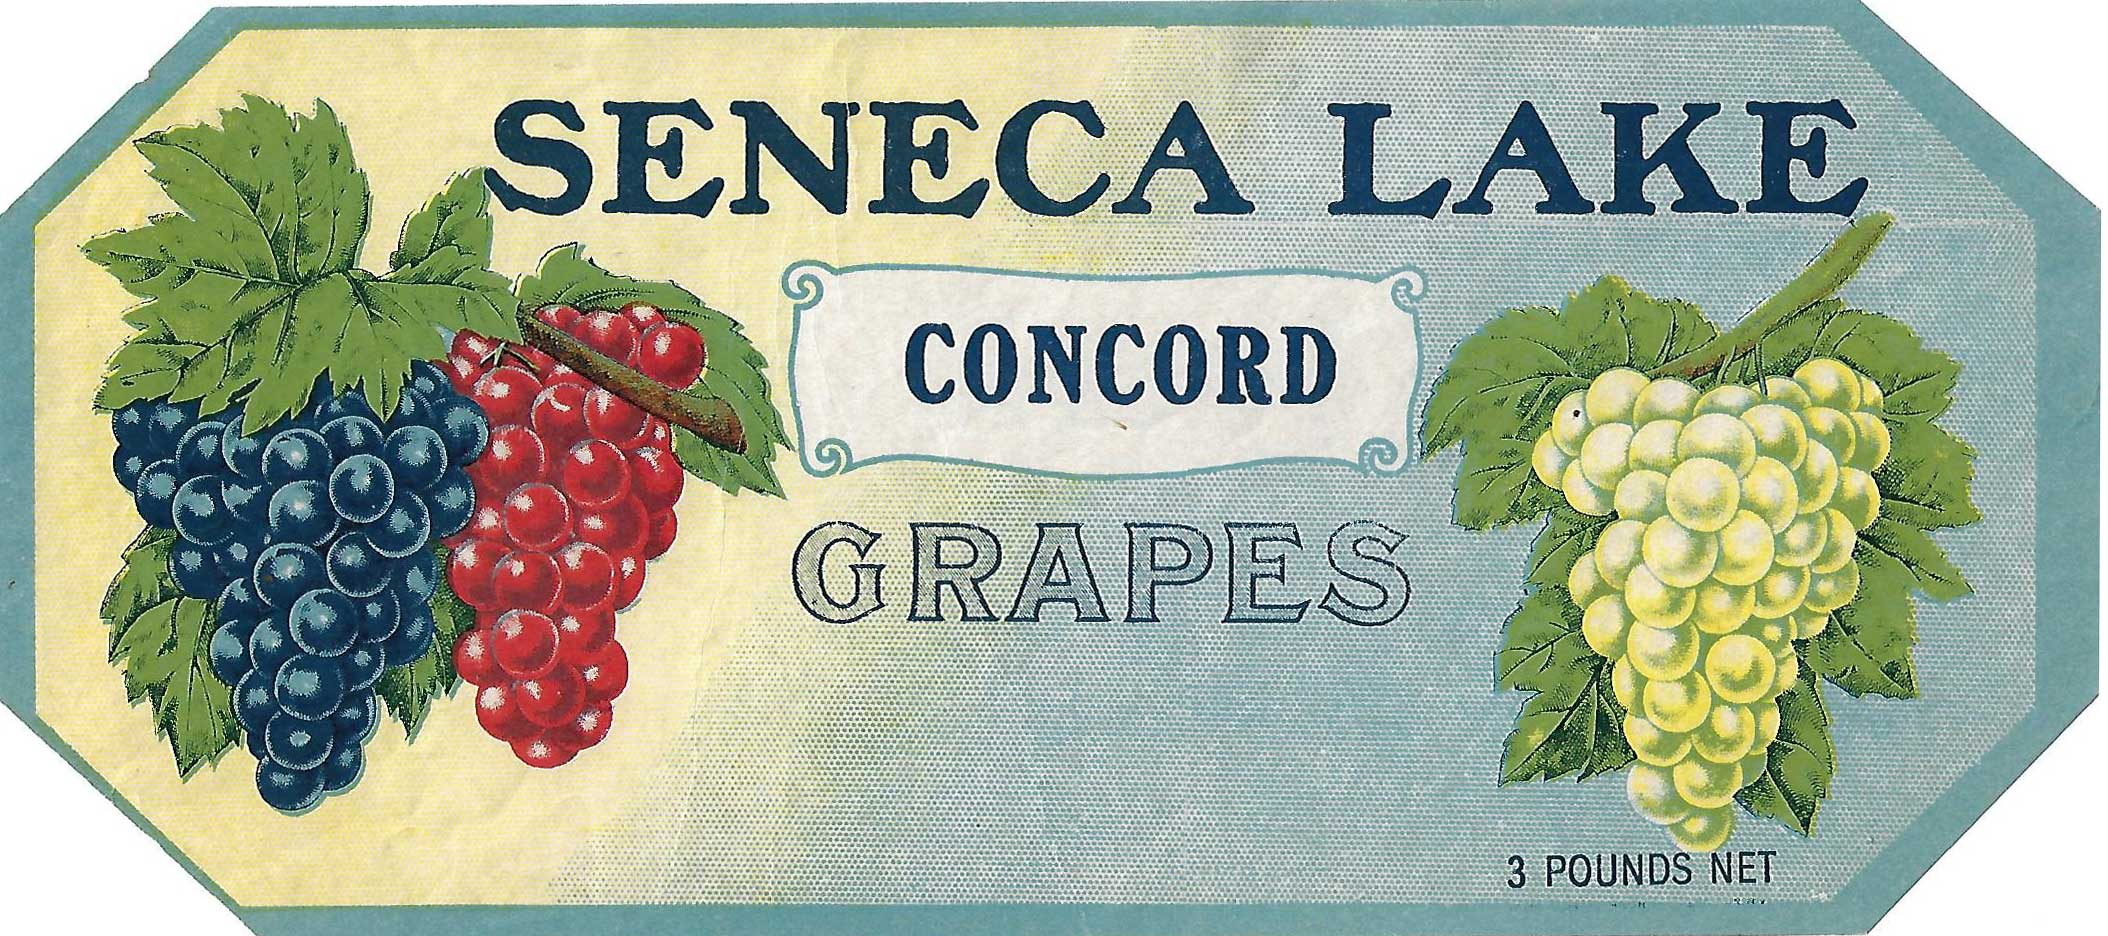 Seneca Lake Brand, Original Concord Grape Crate Label, Circa 1920's, 10.5 x 4.25